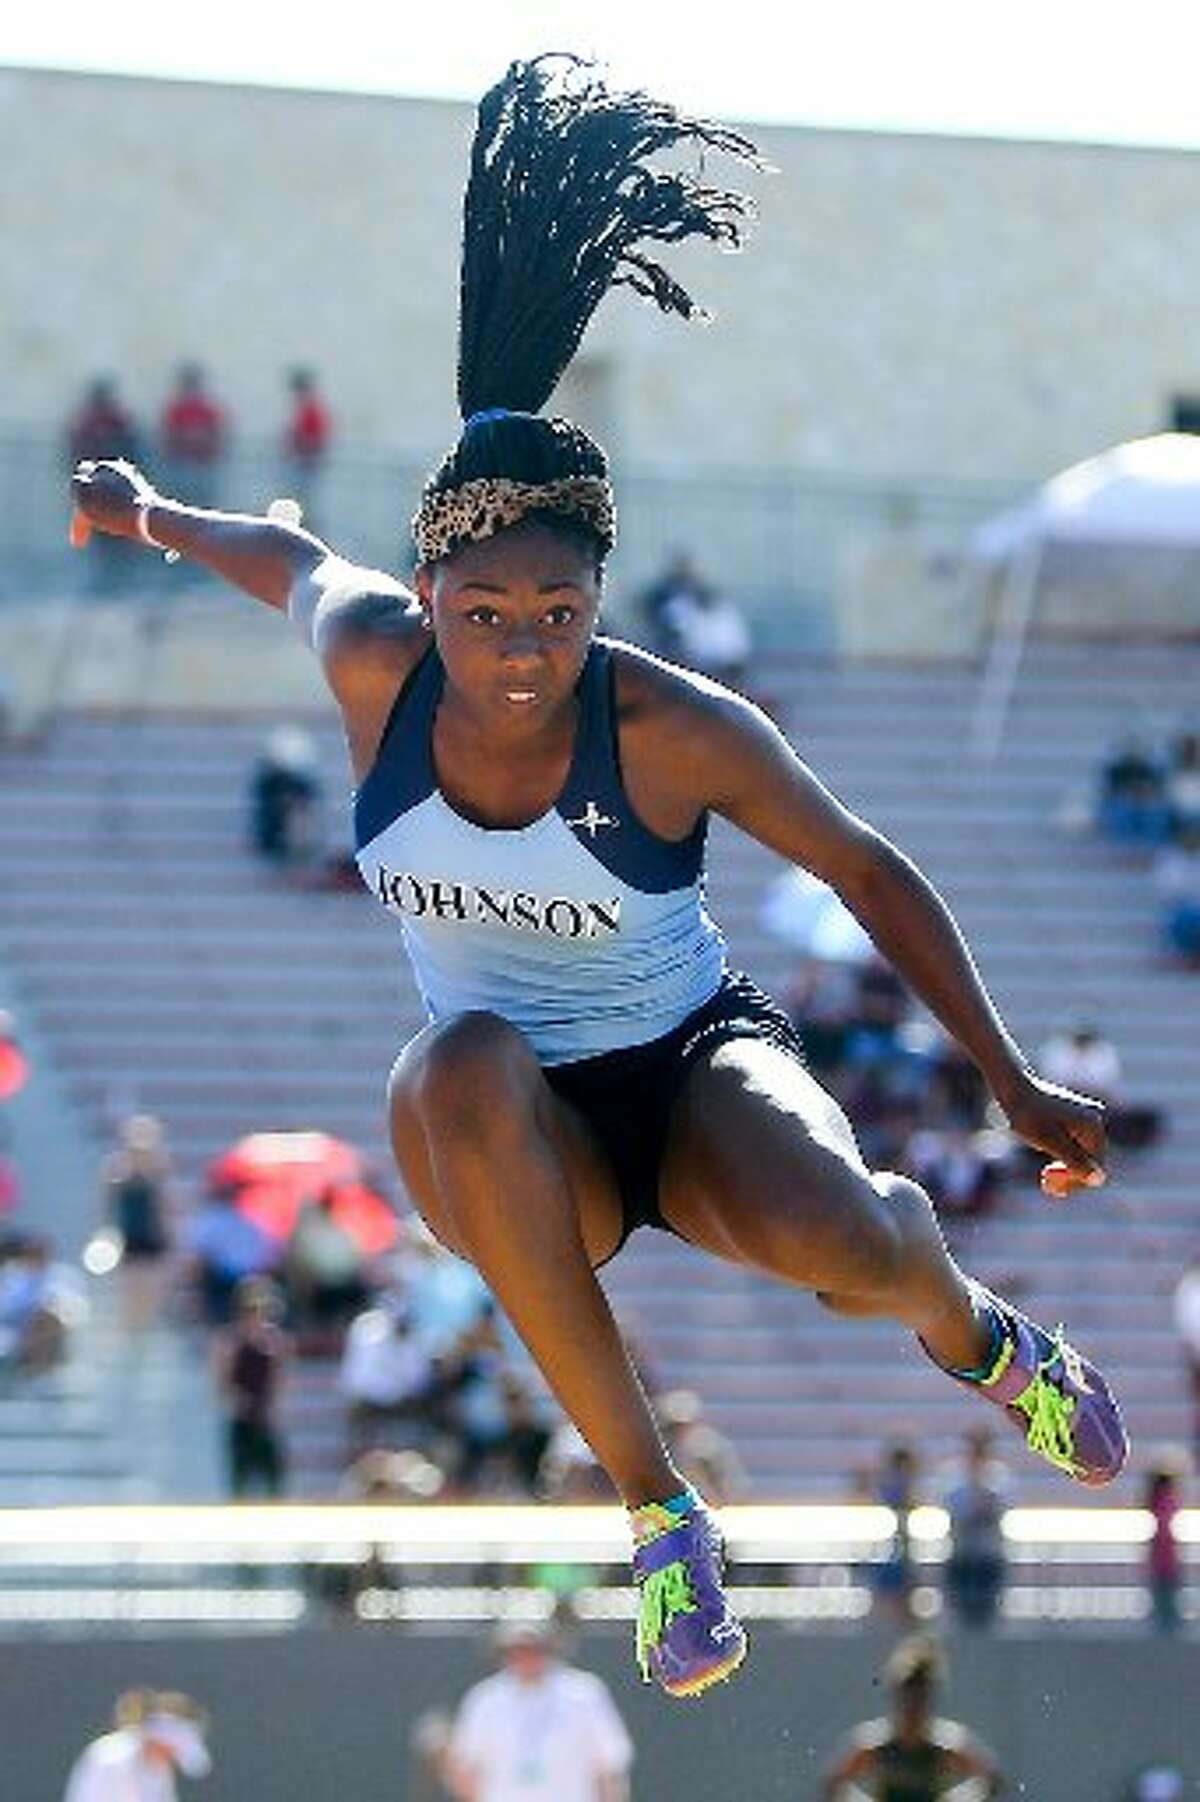 Johnsons' Mikayla Jordan jumps in the 6A Long Jump during the Region IV-5A and Region IV-6A Track and Field meet at Alamo Stadium on Friday, May 1, 2015. Jordan won the event with a leap of 17 feet, 11 3/4 inches.